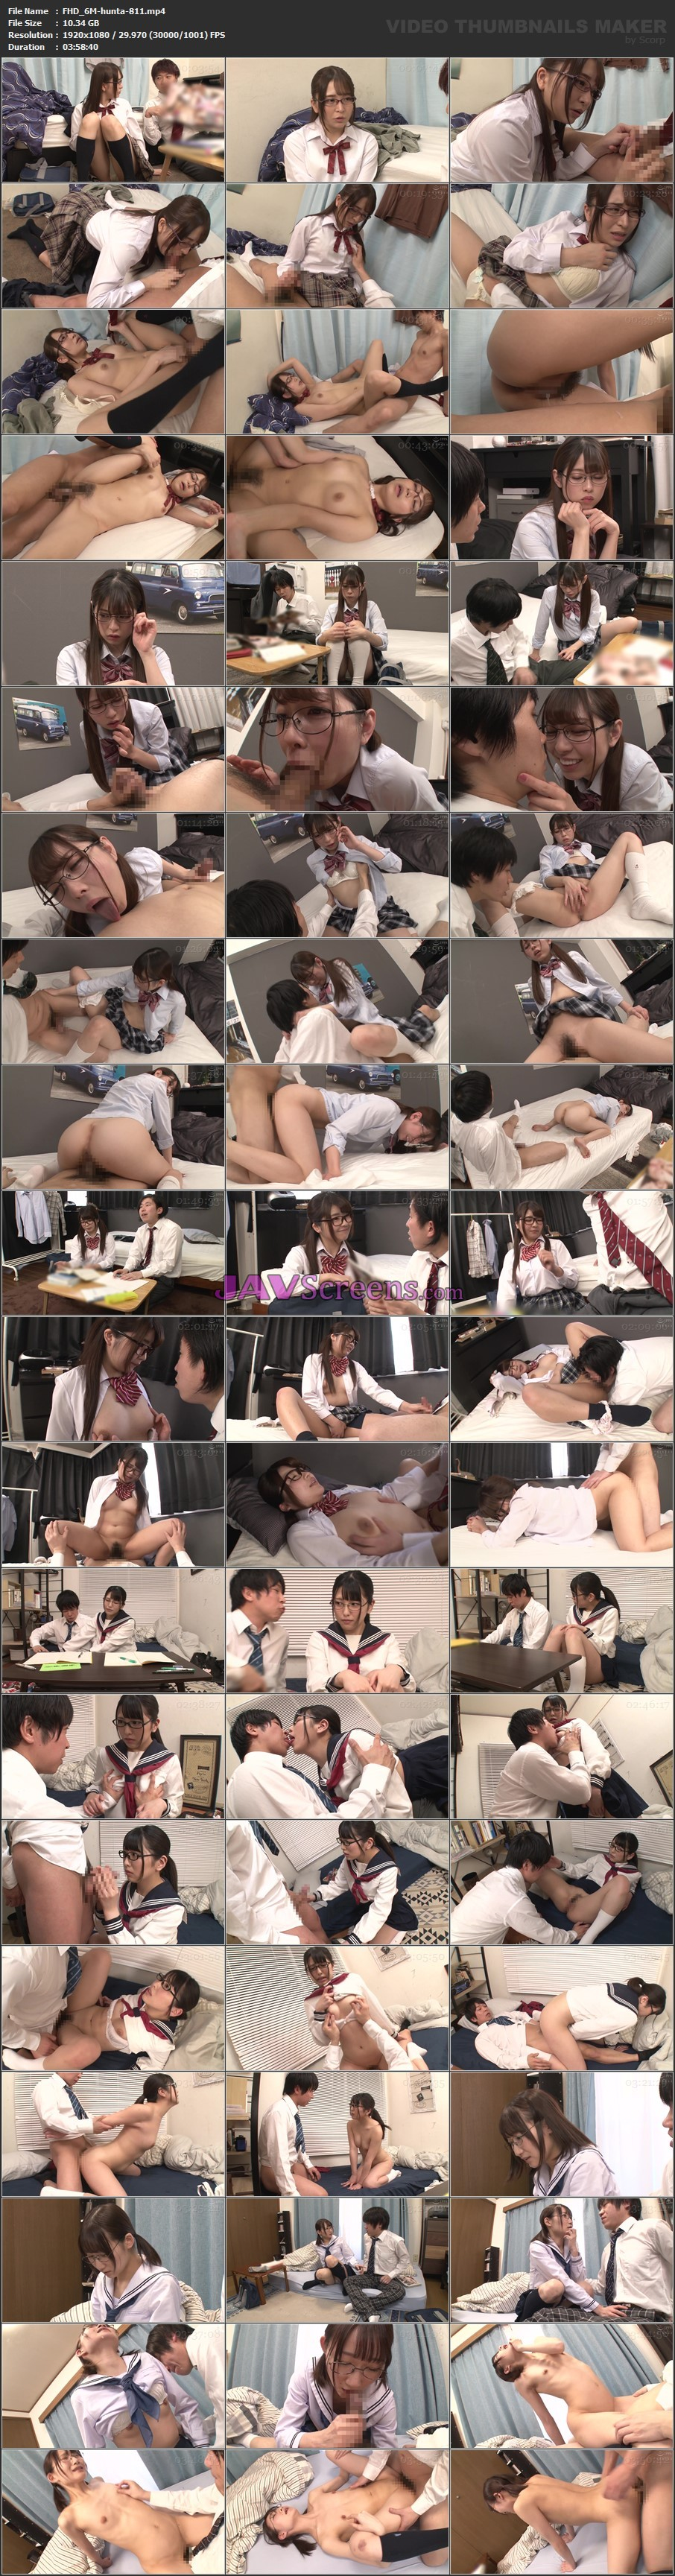 HUNTA-811.jpg - JAV Screenshot